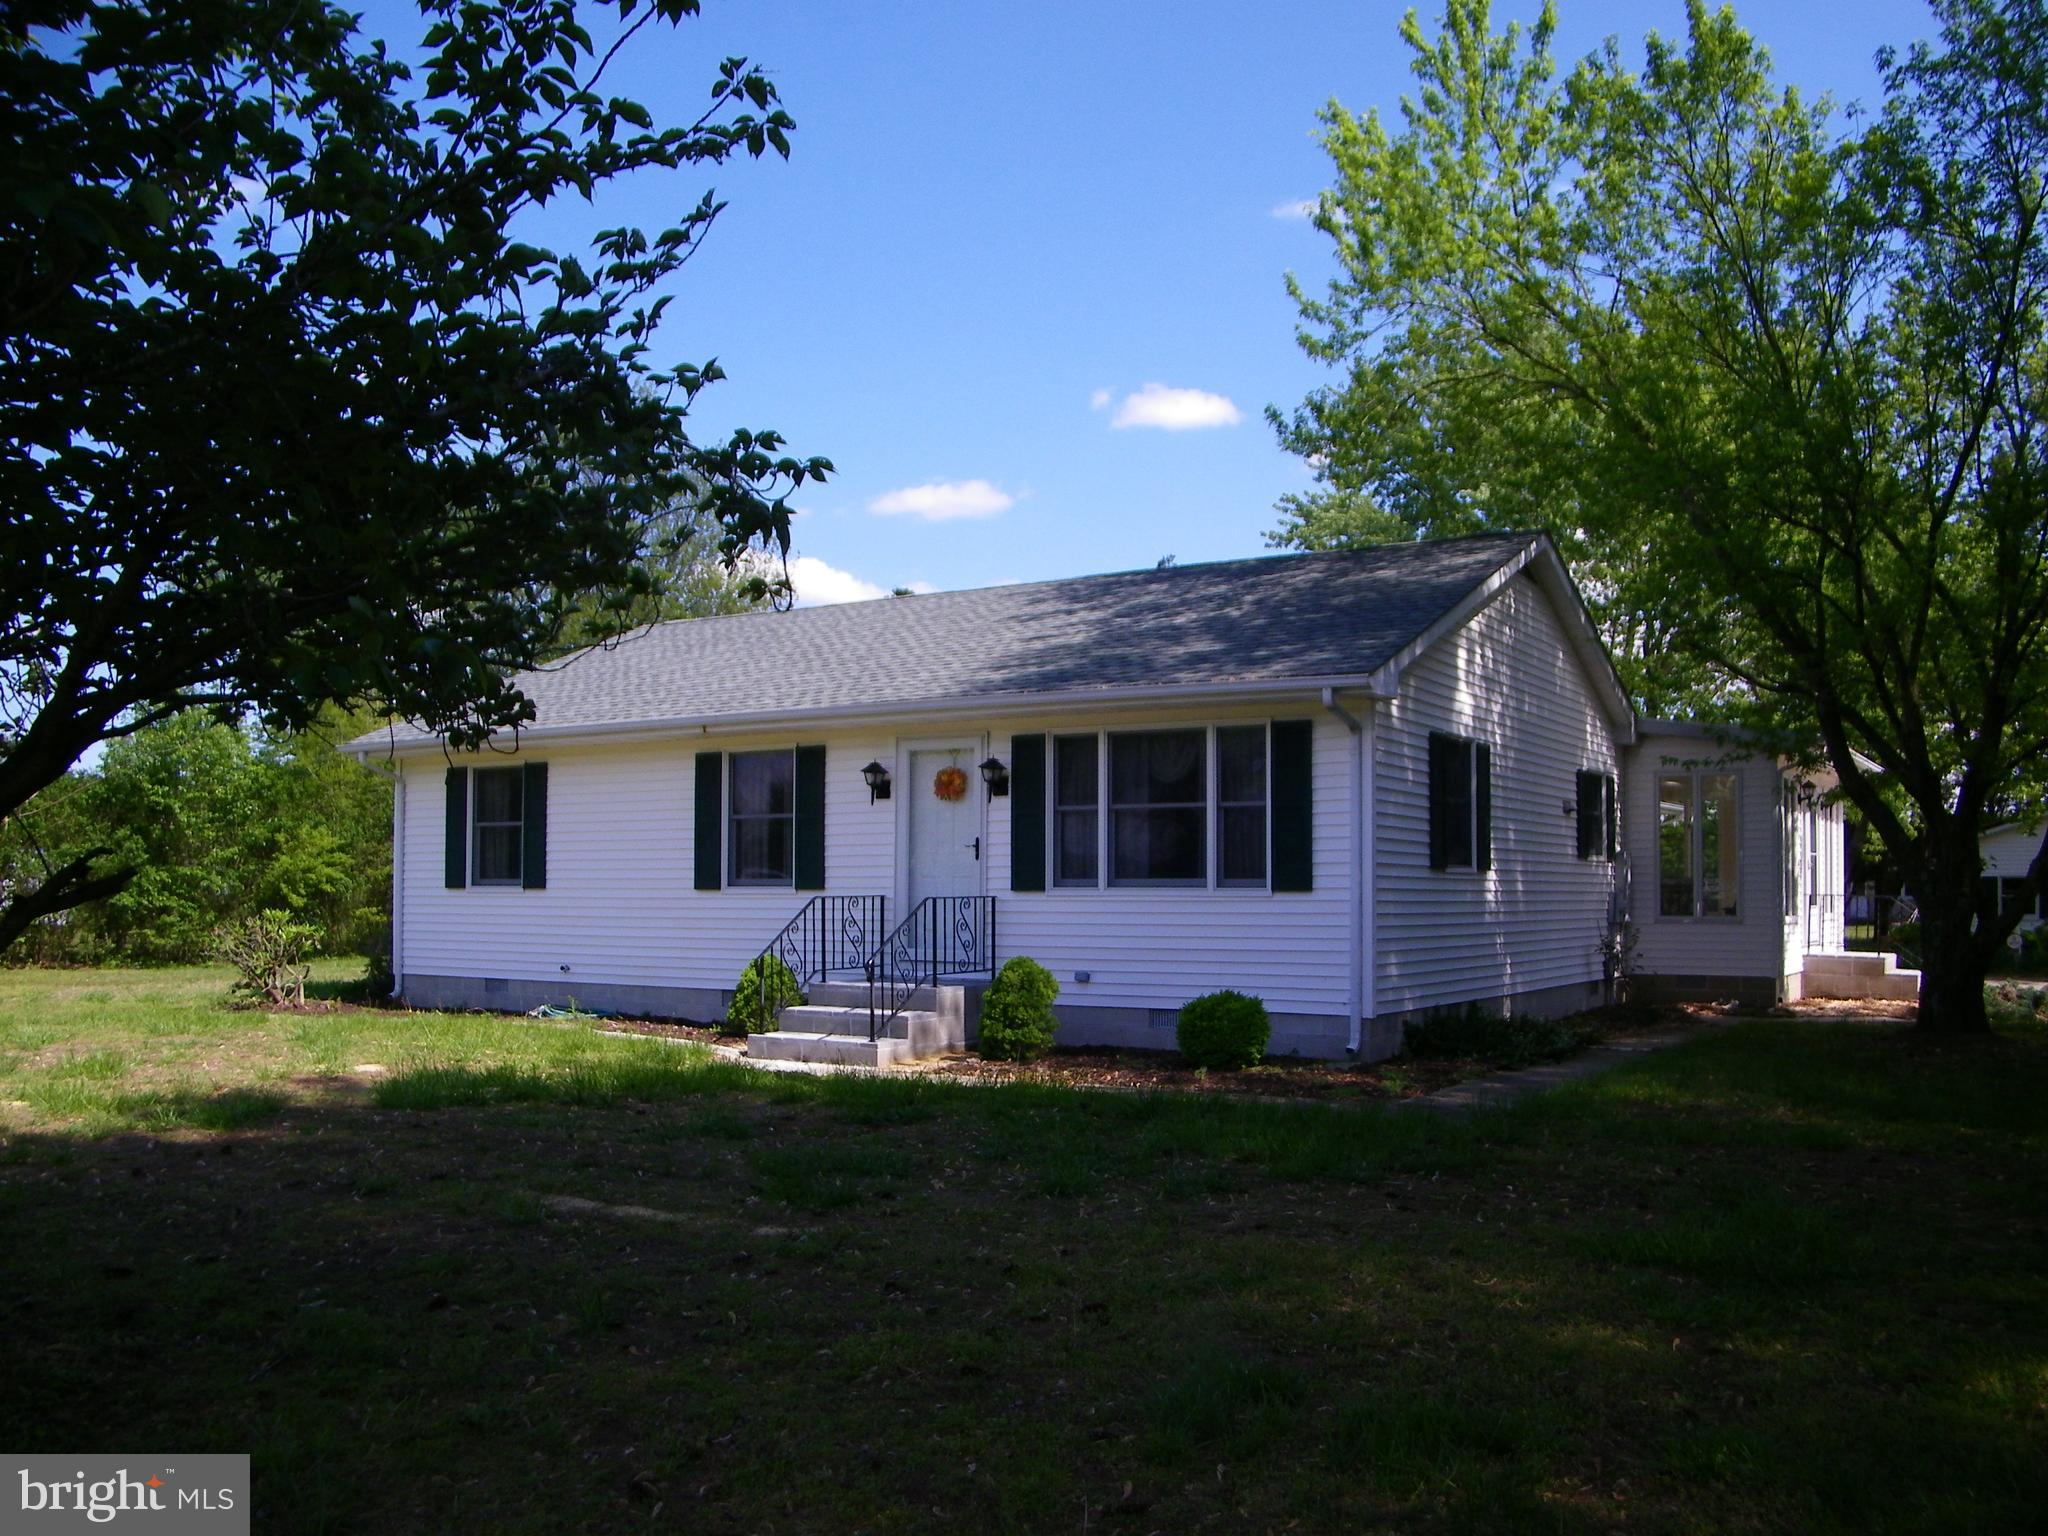 D-9497 -Original home is a Nanticoke with an addition including a spacious sun porch and new full bath.  Home has been renovated with new flooring, kitchen counter tops, new roof and separate one car garage.  Septic has been replaced with a standard system.  Move in ready with no needed updates.  Easy to show.